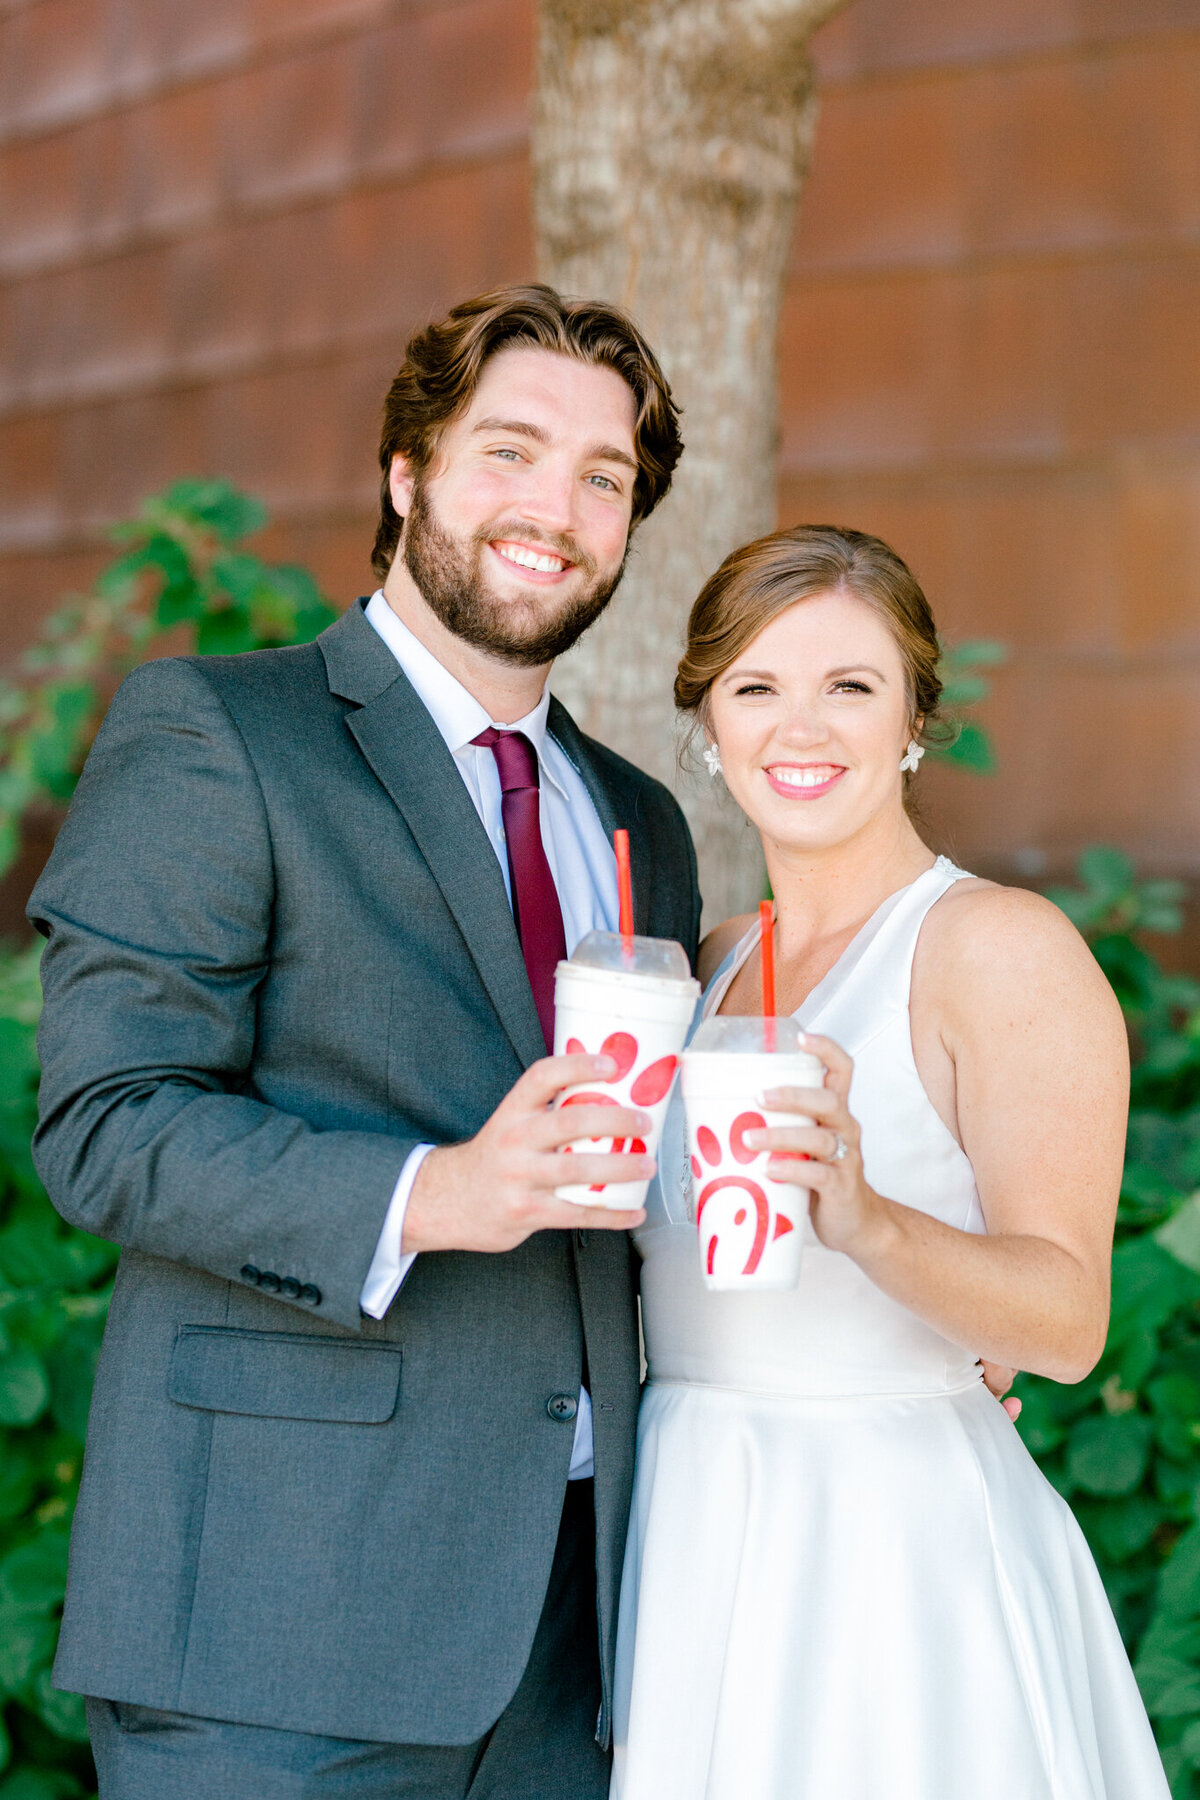 Kaylee & Michael's Wedding at Watermark Community Church | Dallas Wedding Photographer | Sami Kathryn Photography-41